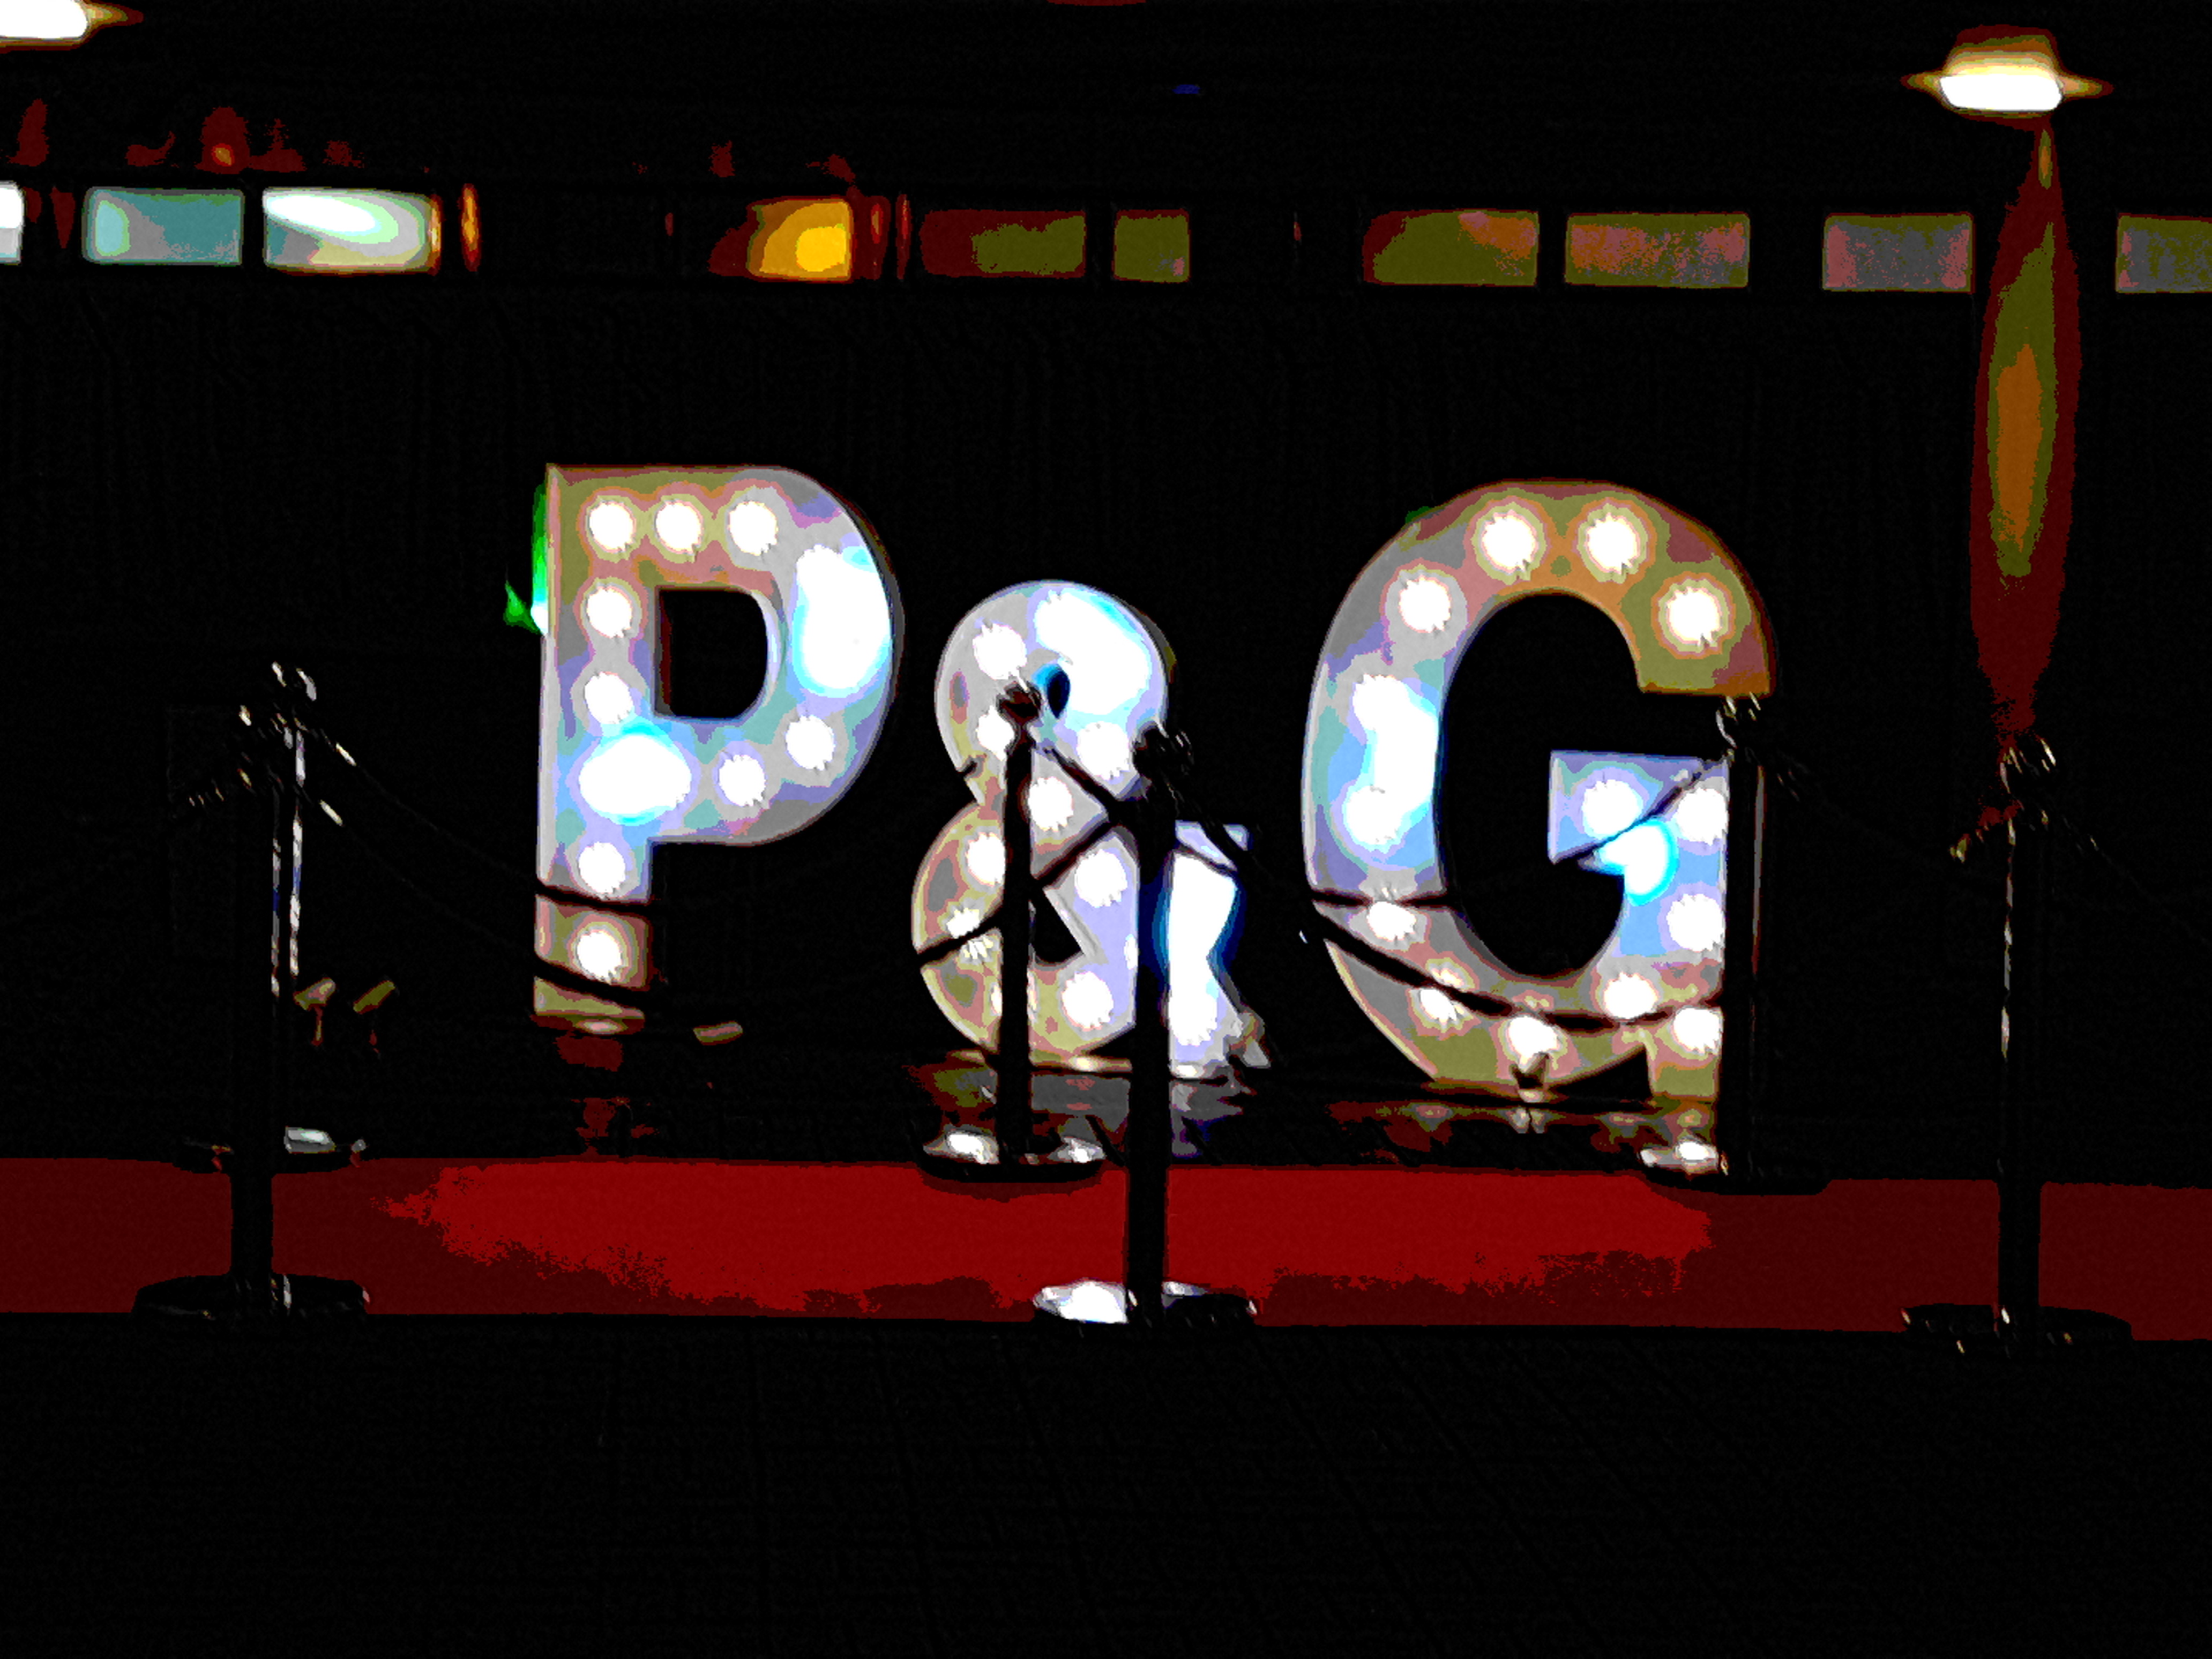 P&G initial letter lights